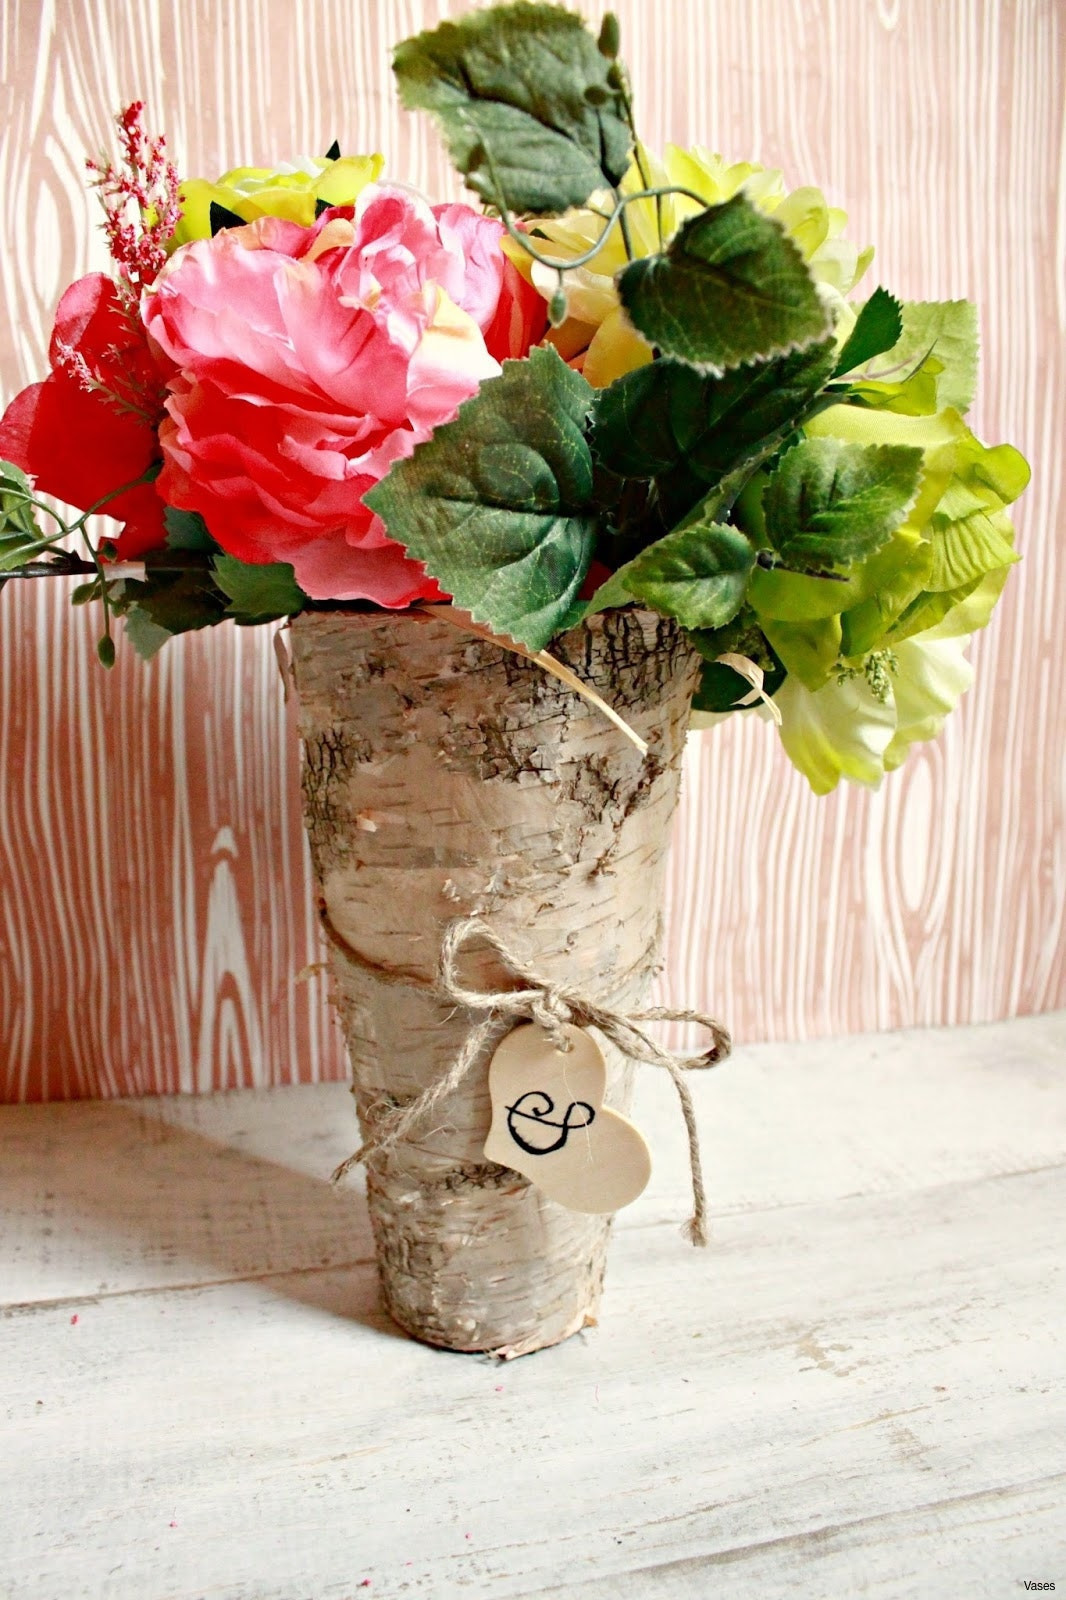 rose gold vases with flowers of rose gold vase images flowers and decorations for weddings h vases regarding rose gold vase images flowers and decorations for weddings h vases diy wood vase i 0d